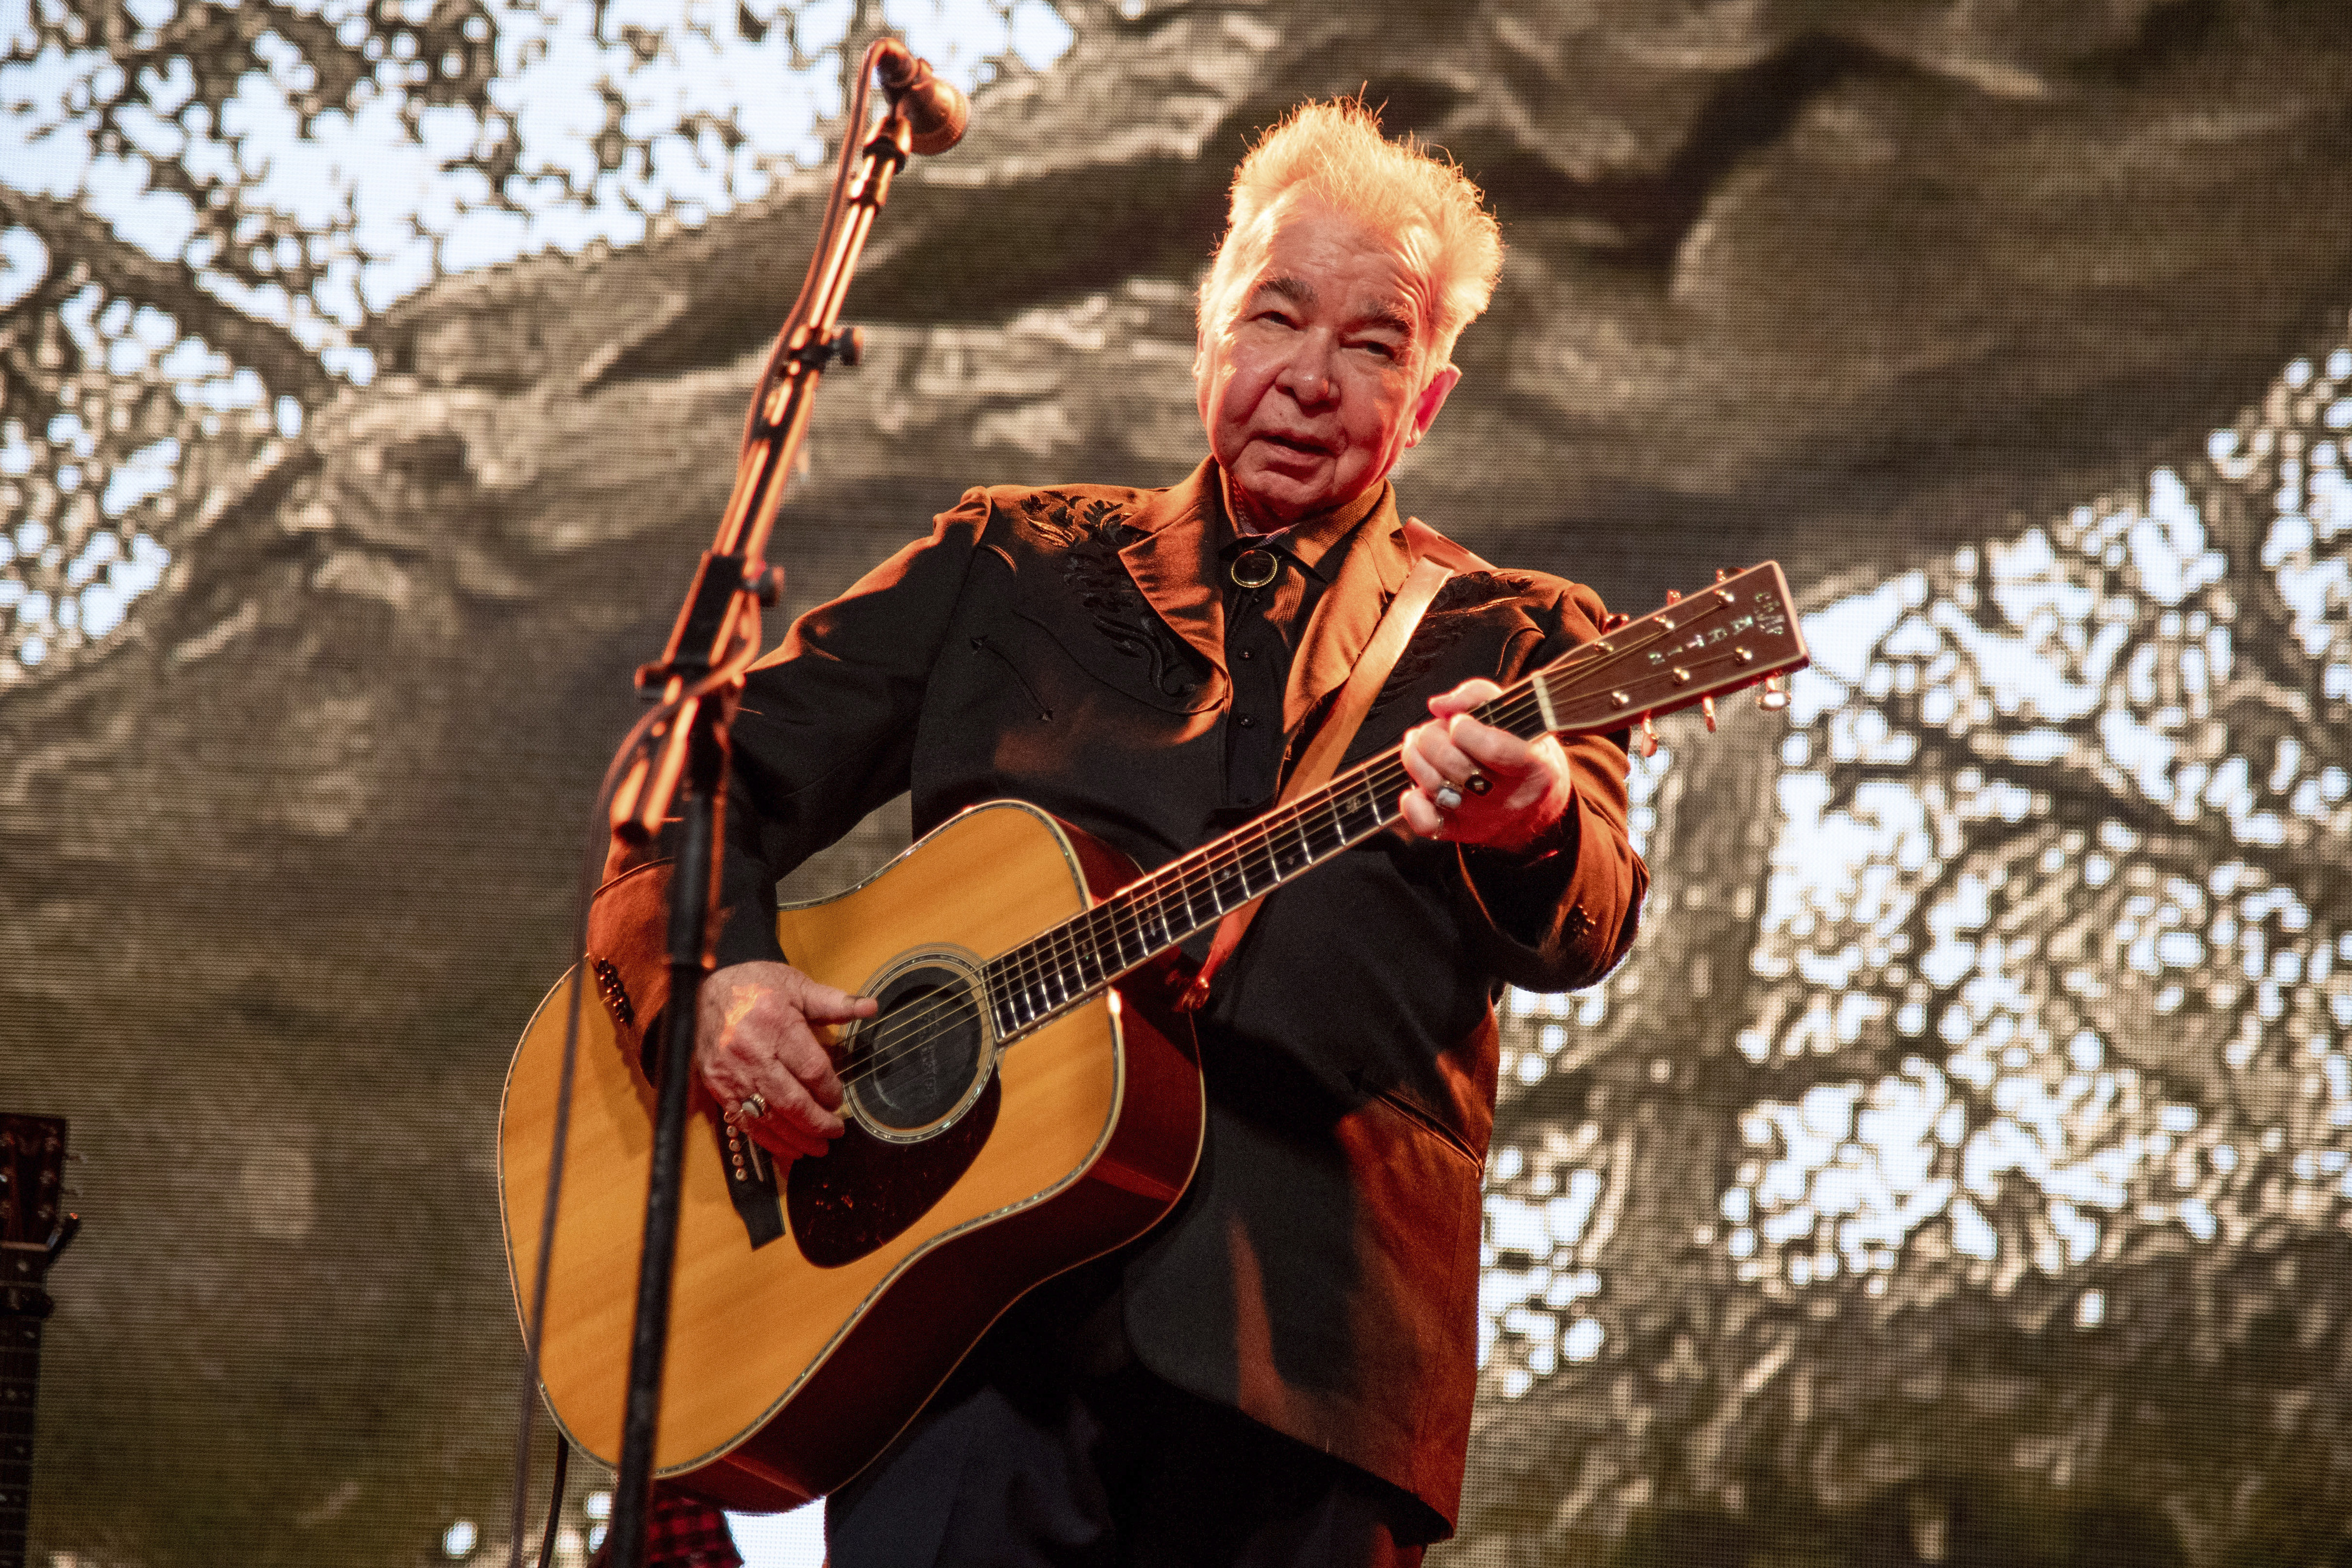 FILE - This June 15, 2019 file photo shows John Prine performing at the Bonnaroo Music and Arts Festival in Manchester, Tenn. …